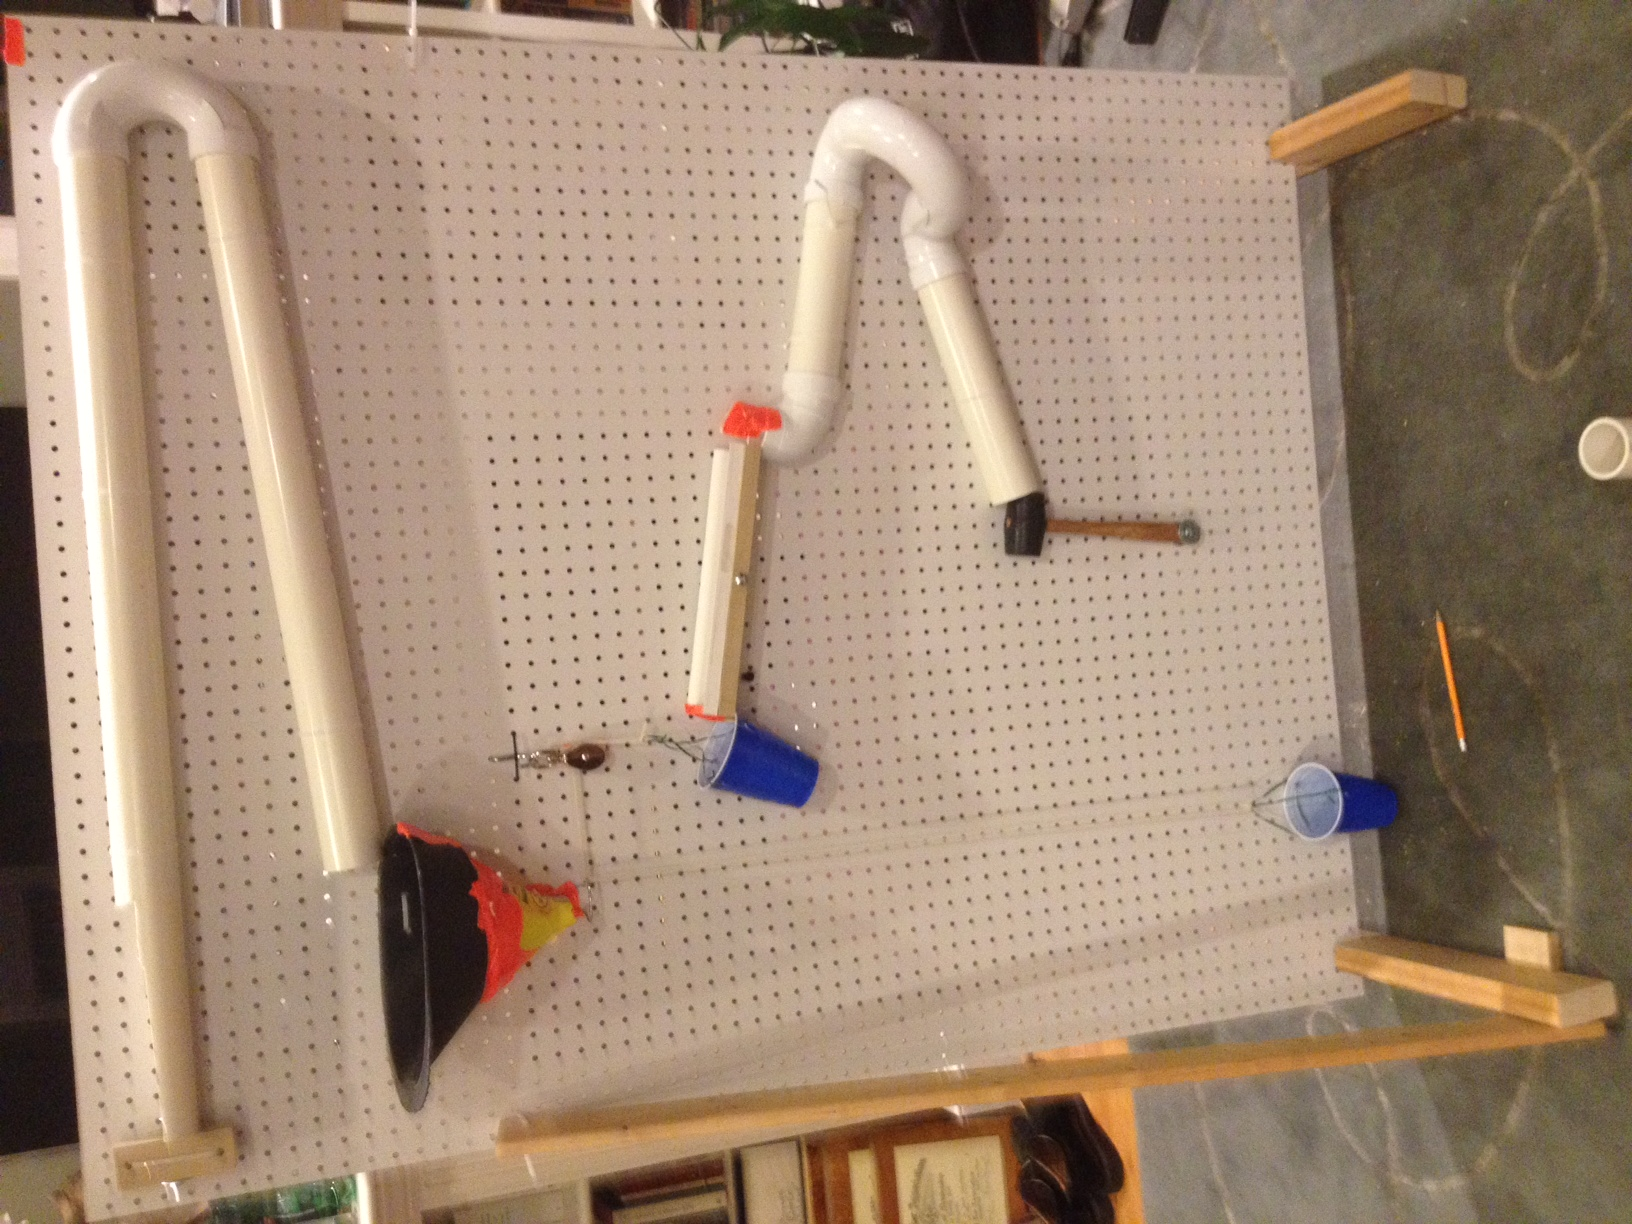 the rube goldberg project You will identify the six types of simple machines by providing examples from the video.